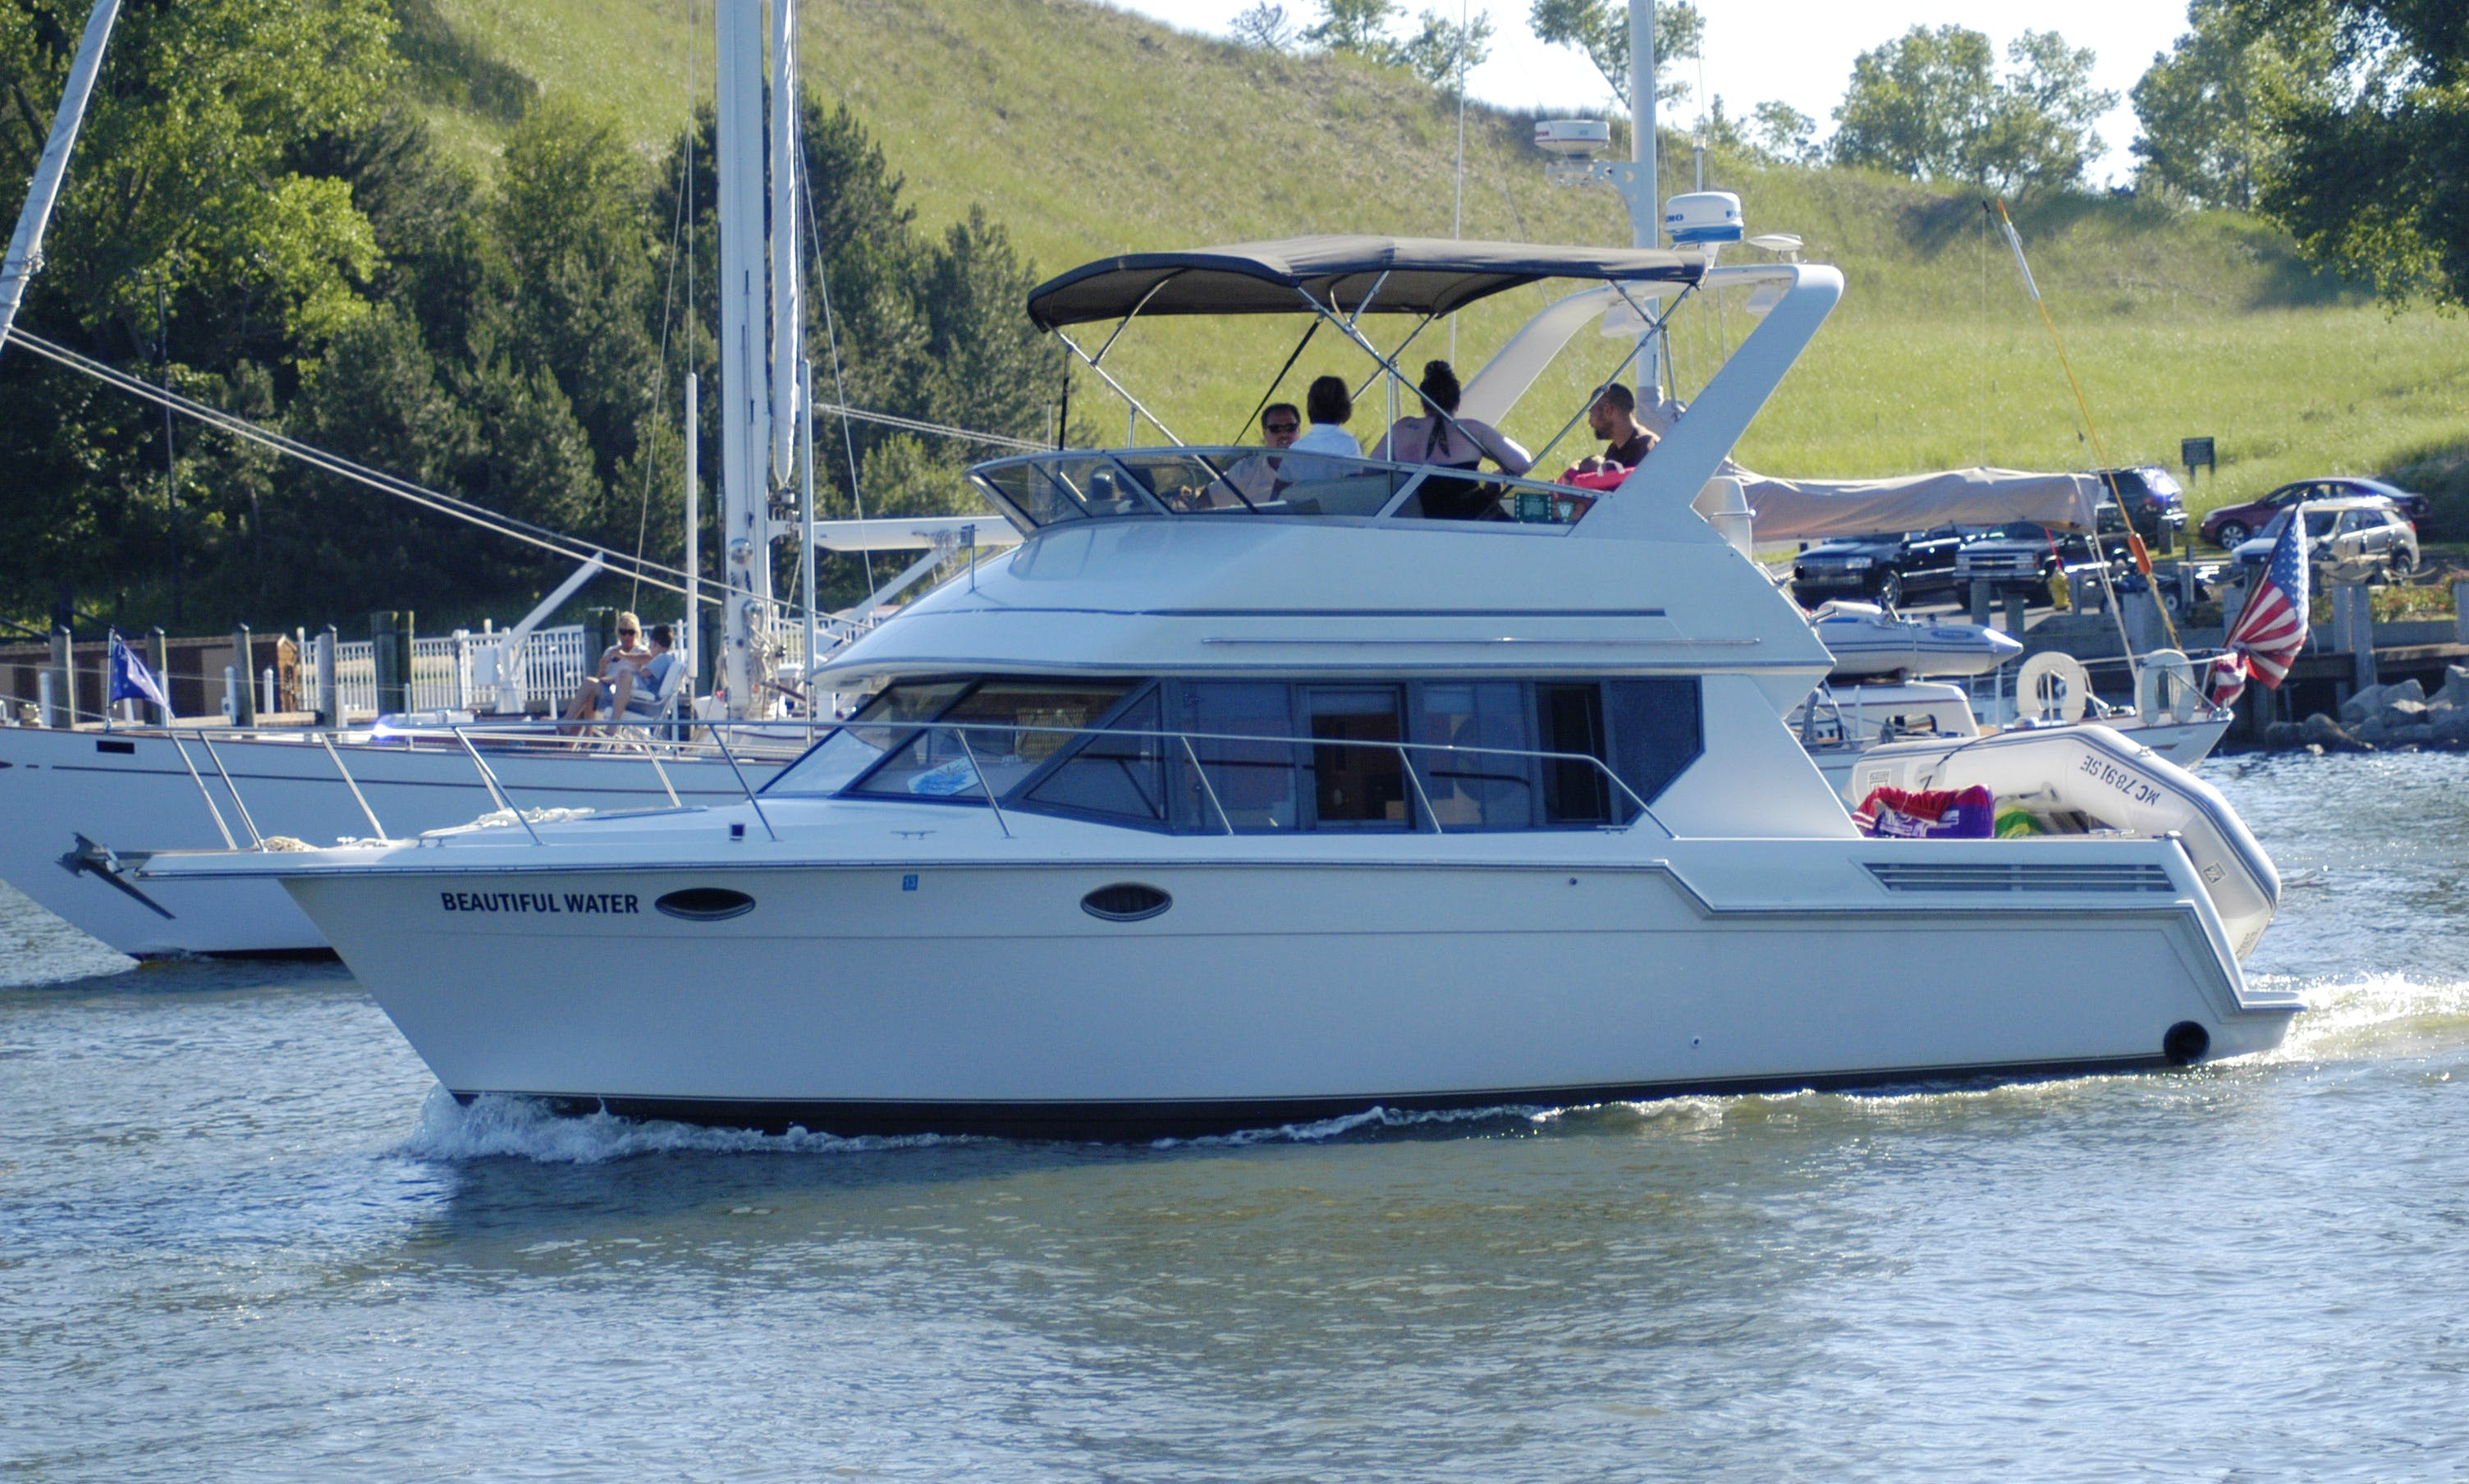 Guided Tour Charter in Saugatuck / Beau H2O Excursions